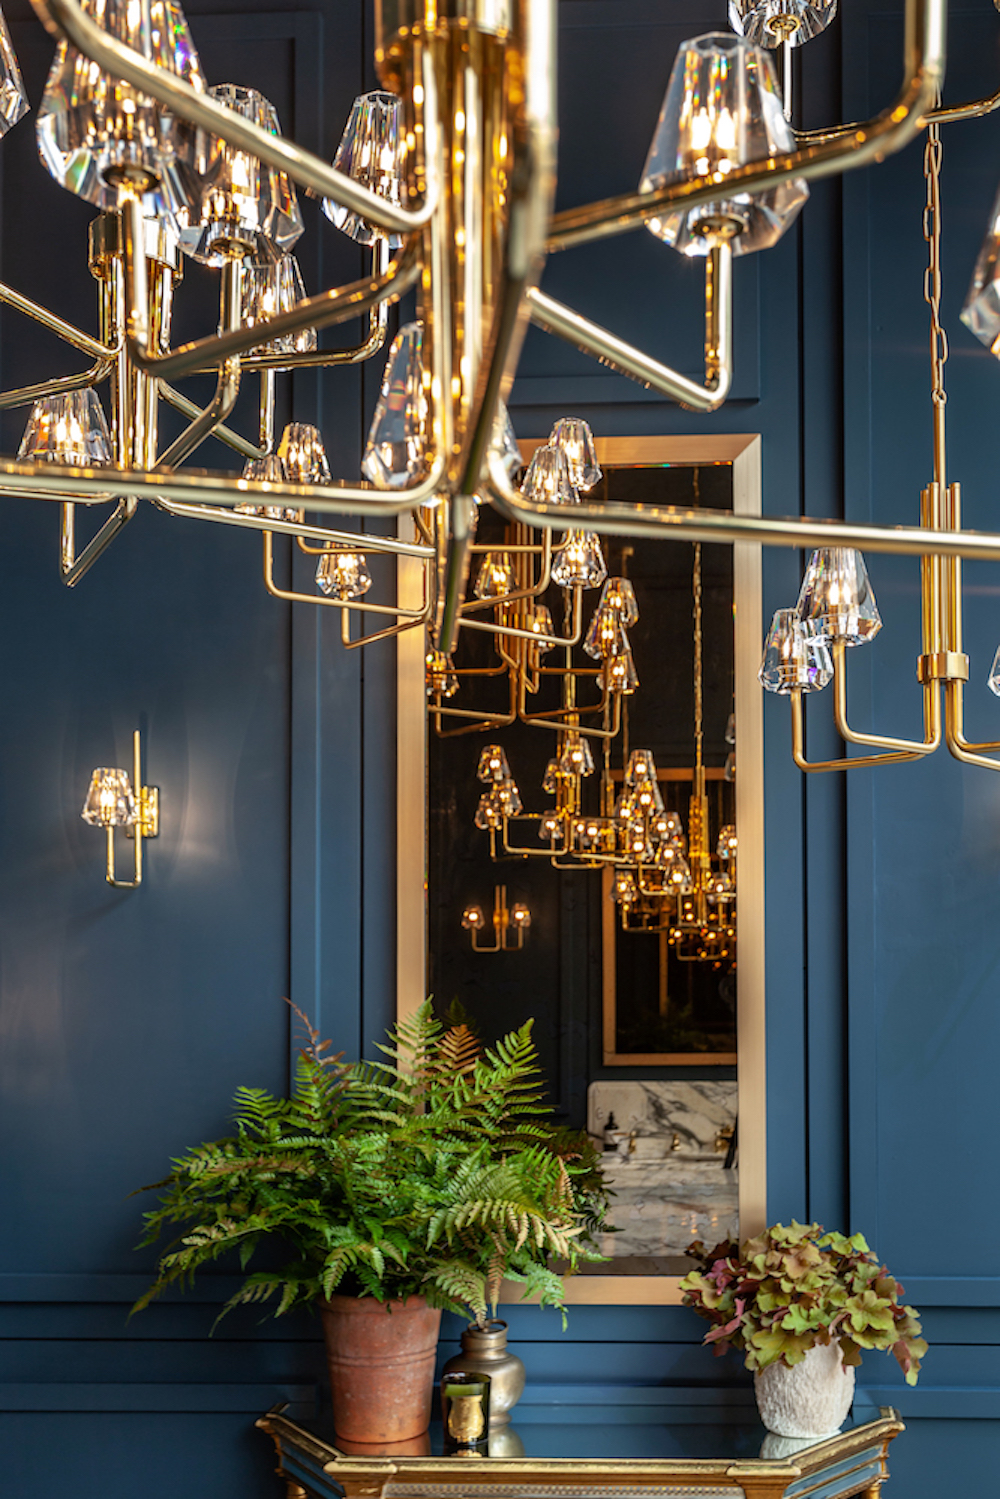 The  Aquiline Eight-Arm Chandelier  is the ultimate statement piece for larger spaces. Its double height arms and broad span make it a perfect choice for accentuating height and architectural features.